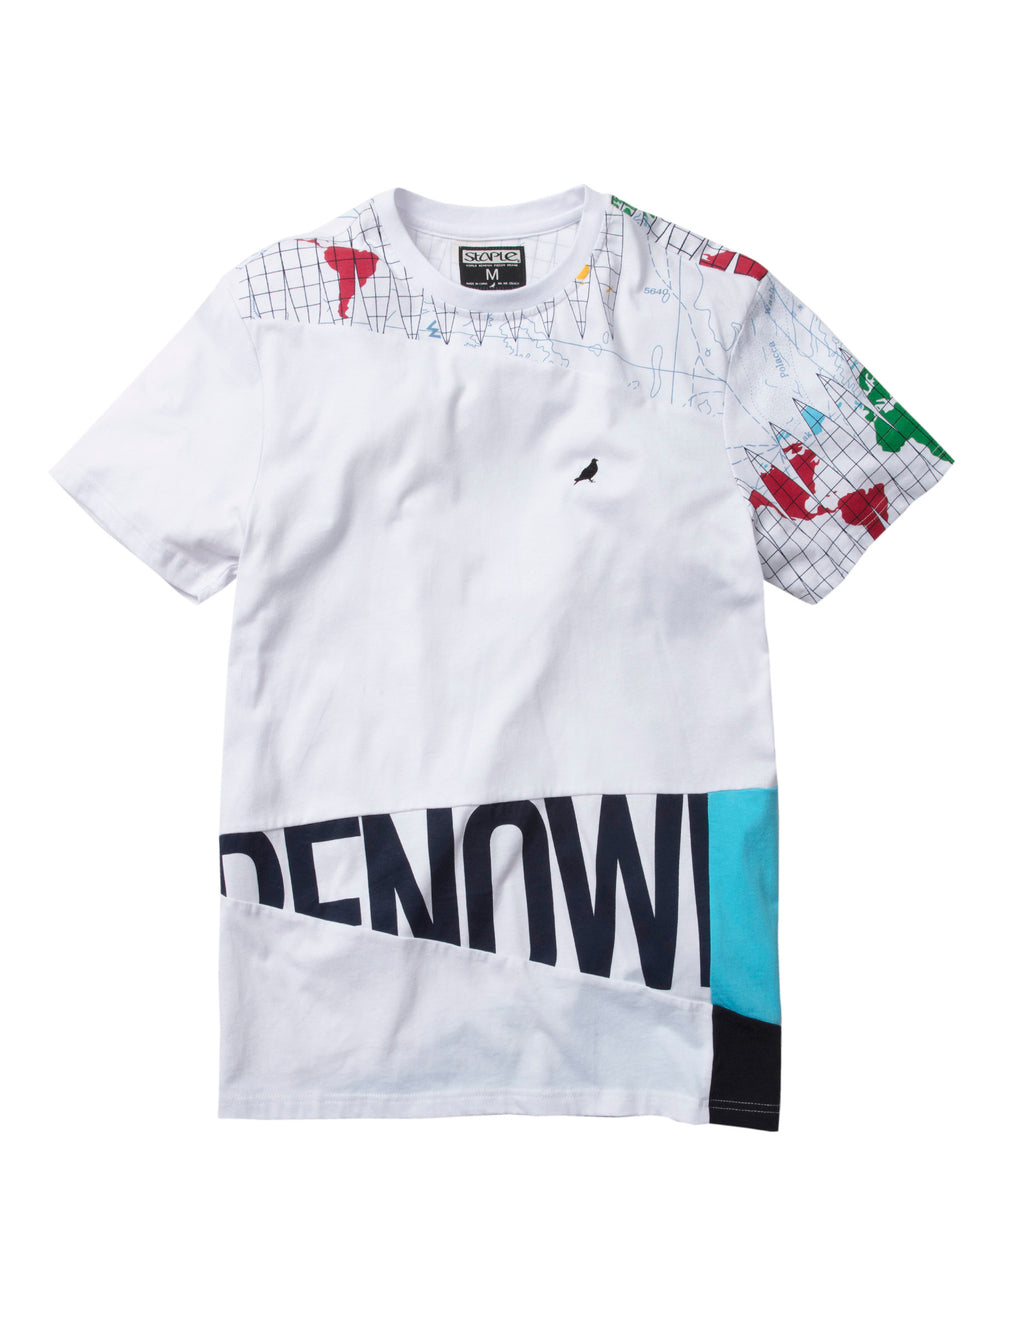 World Tour Pieced Tee - Tee | Staple Pigeon